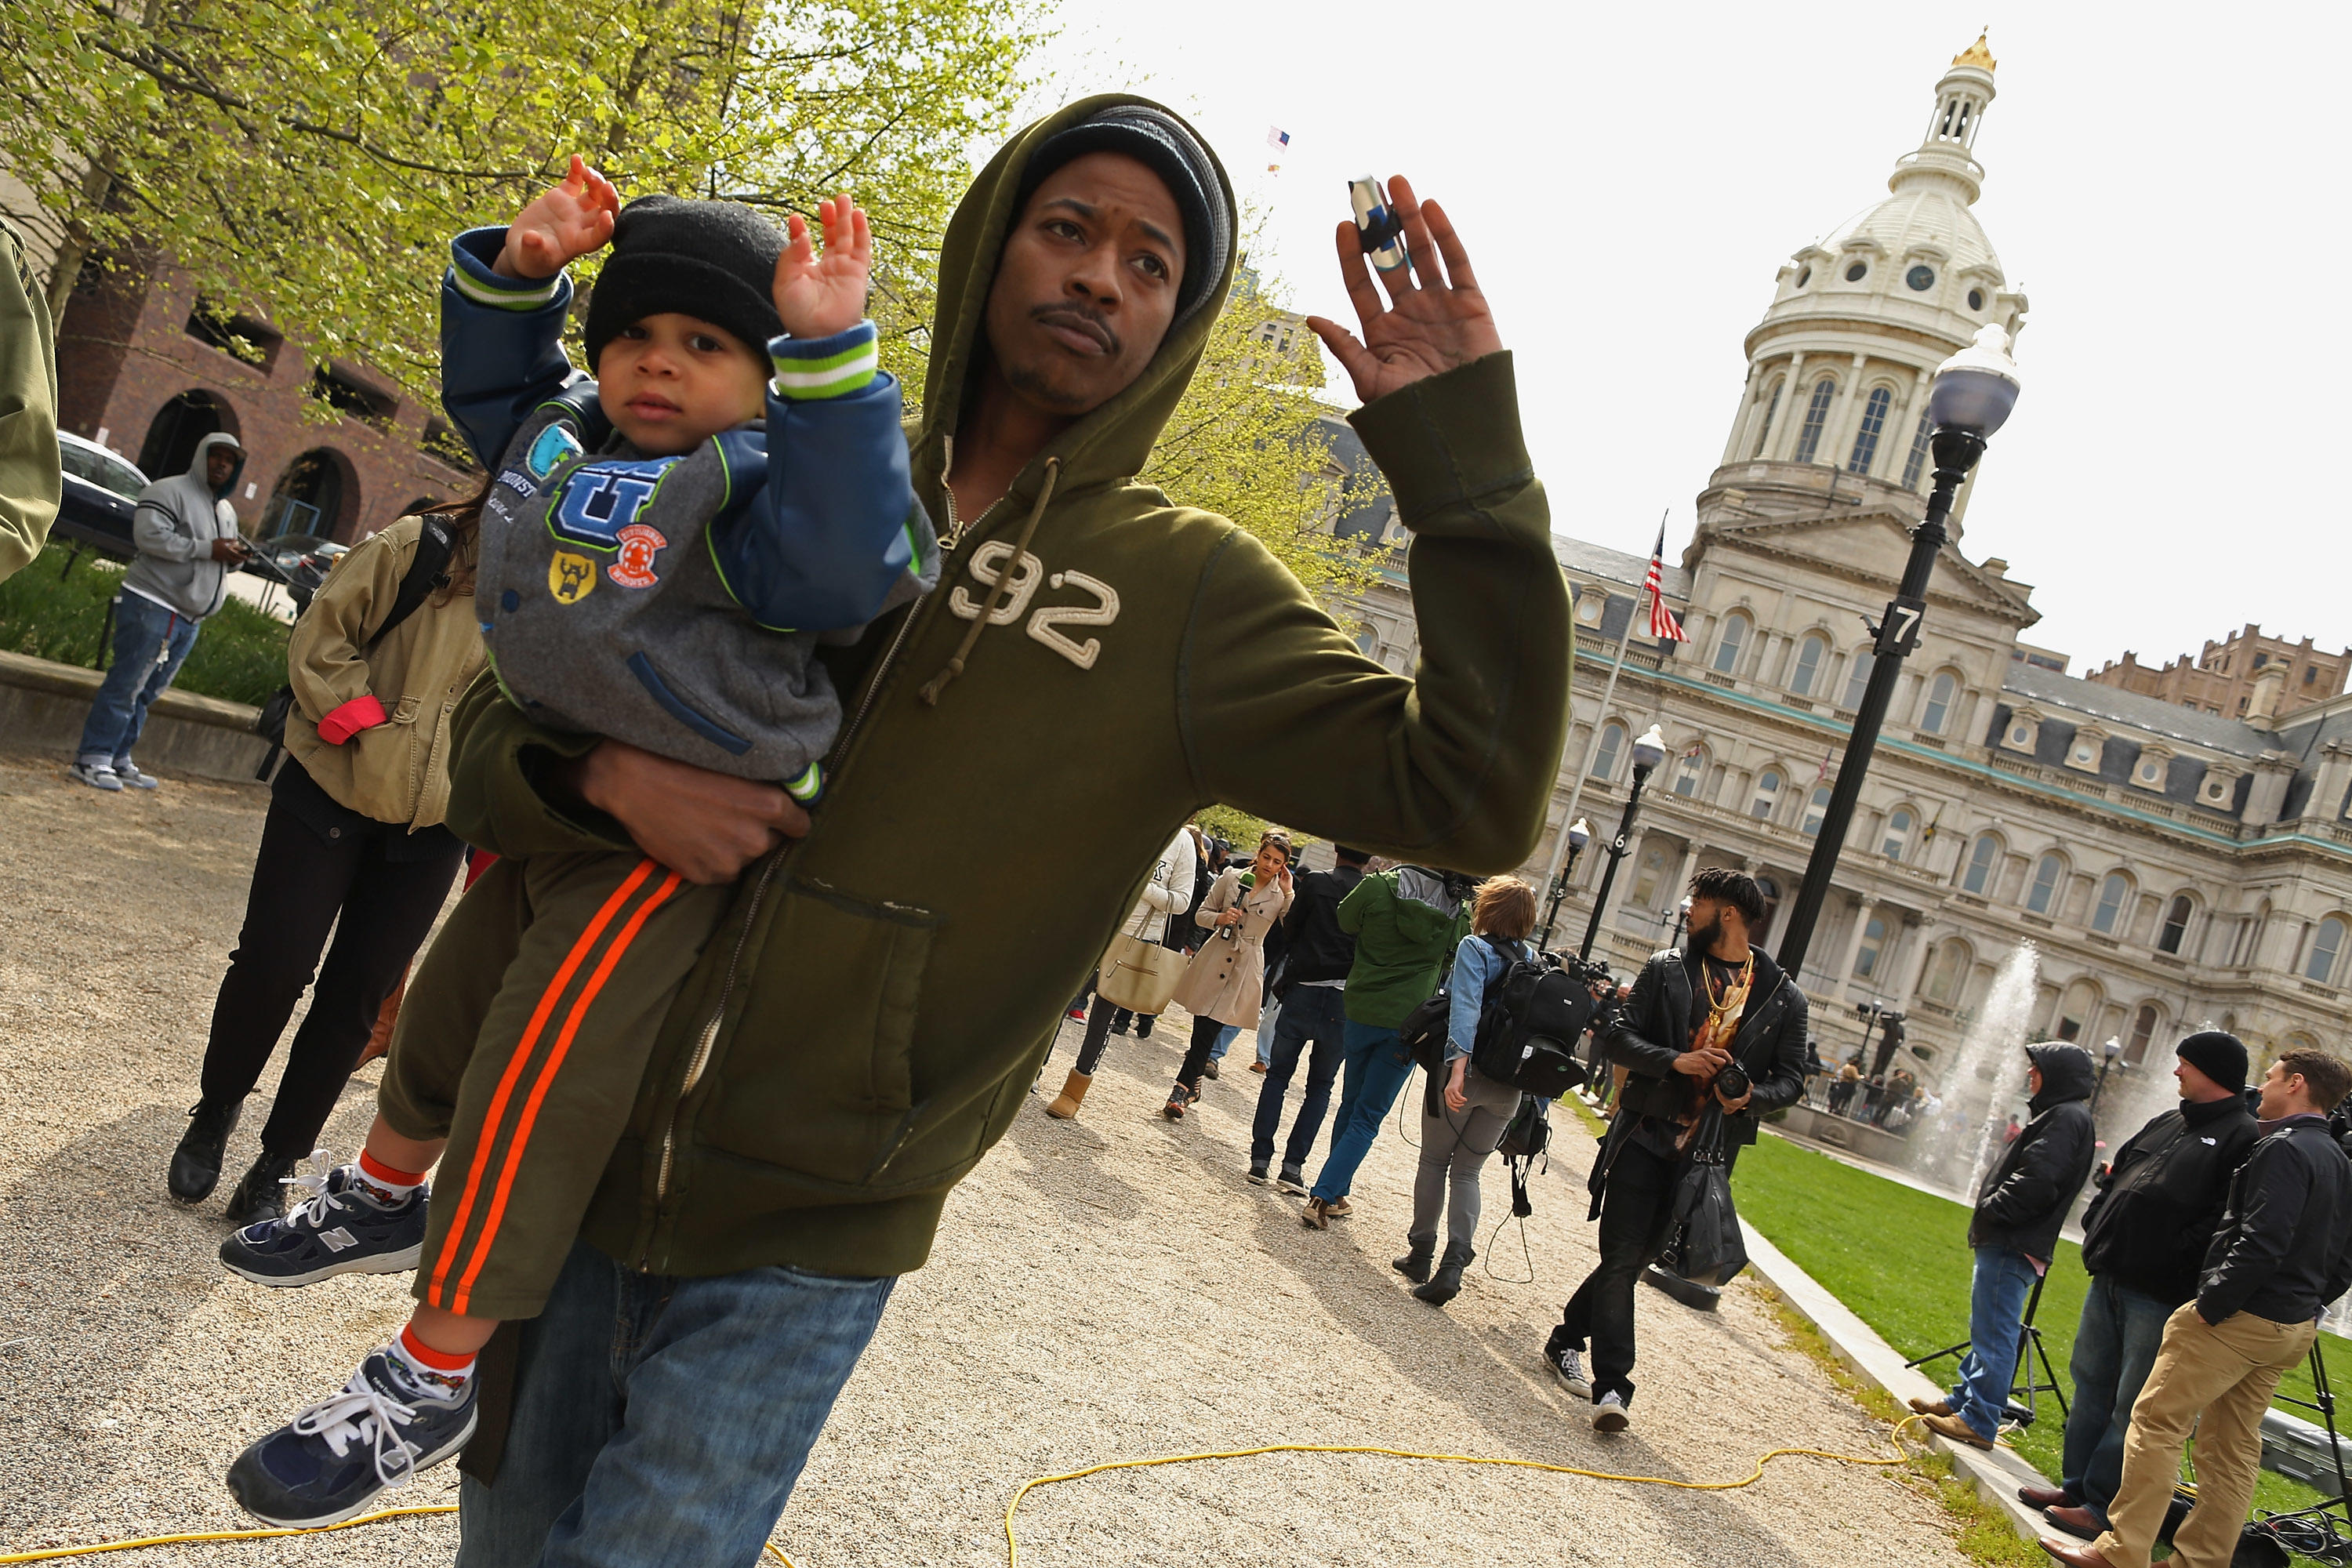 Baltimore Protests over death of Freddie Gray